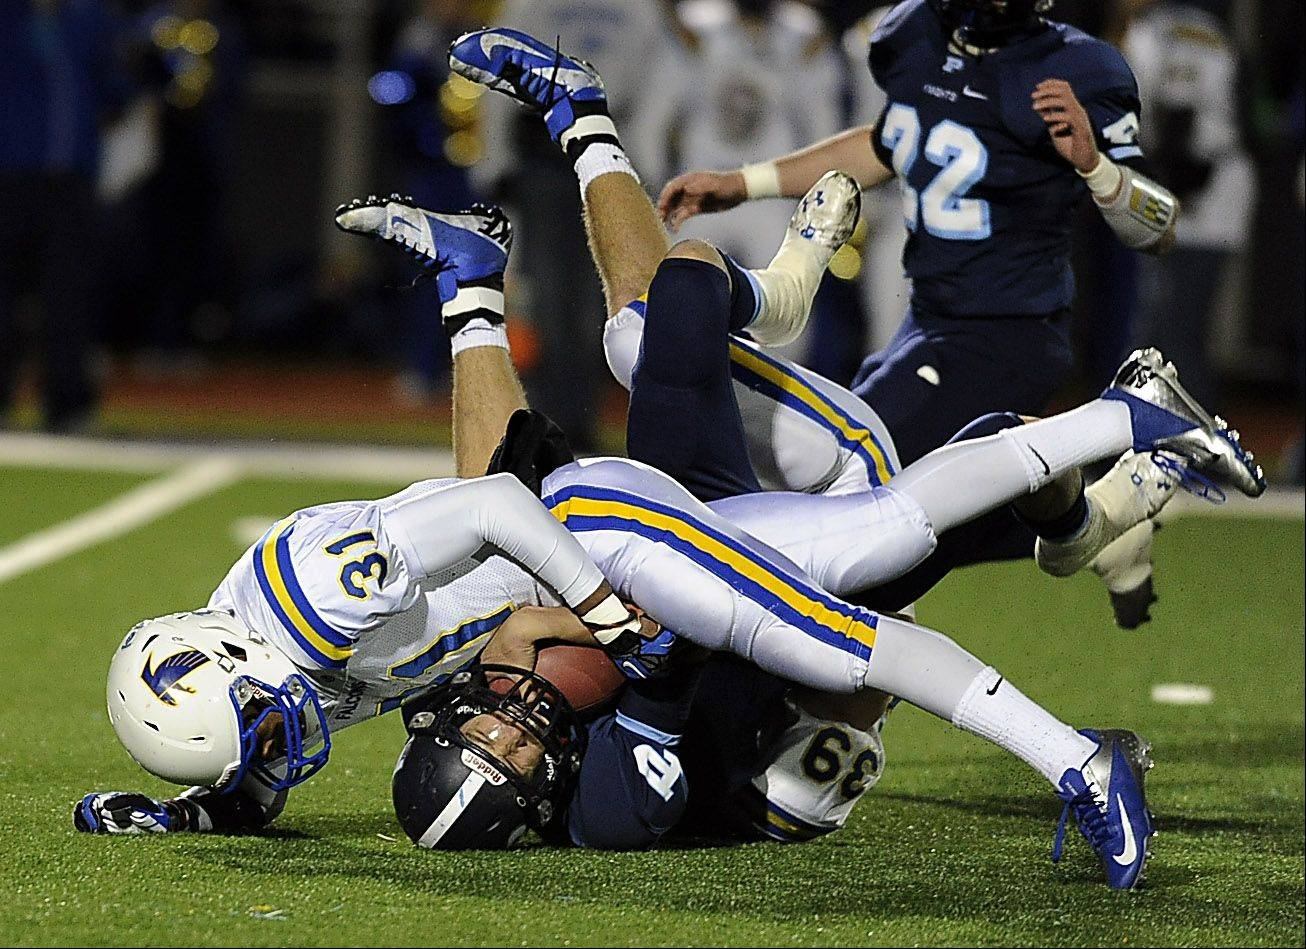 Wheaton North's Jaylen Howze and Kellen Cleveland bring down Prospect's quarterback Devin O'Hara in the Class 7A second-round football game at Prospect High School on Friday.